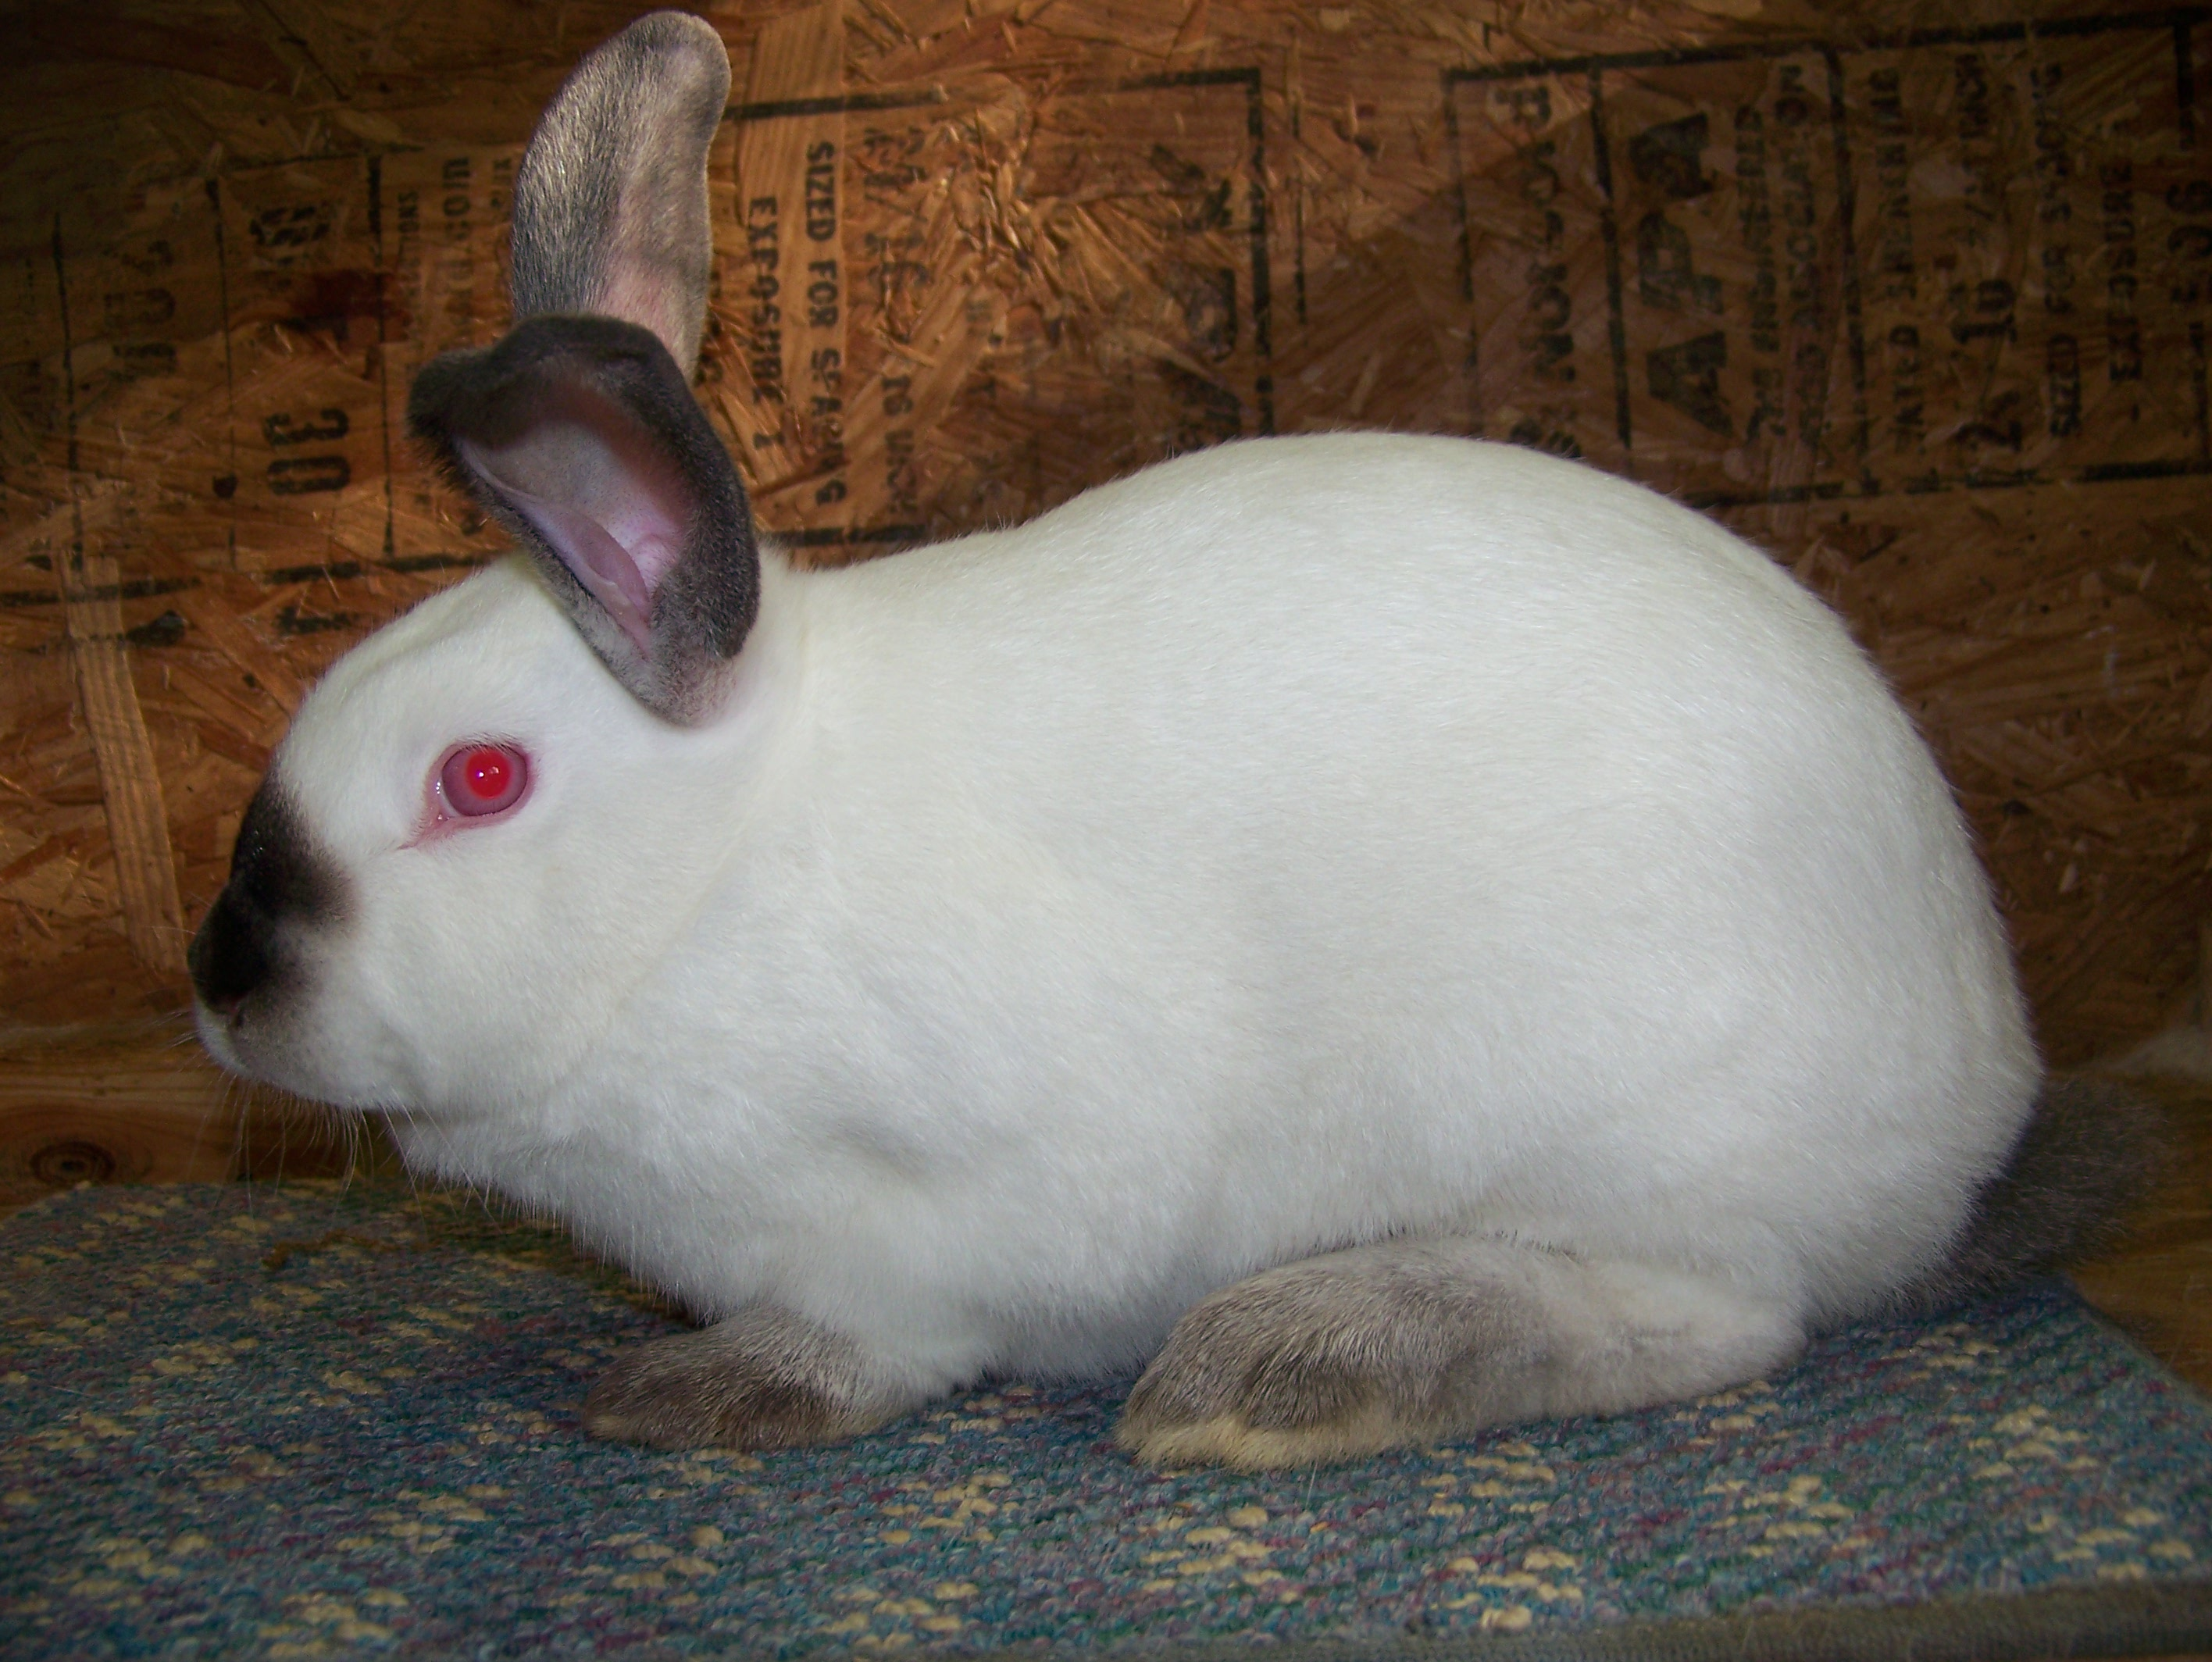 ... rabbits for sale using our directory (like the rabbit shown above